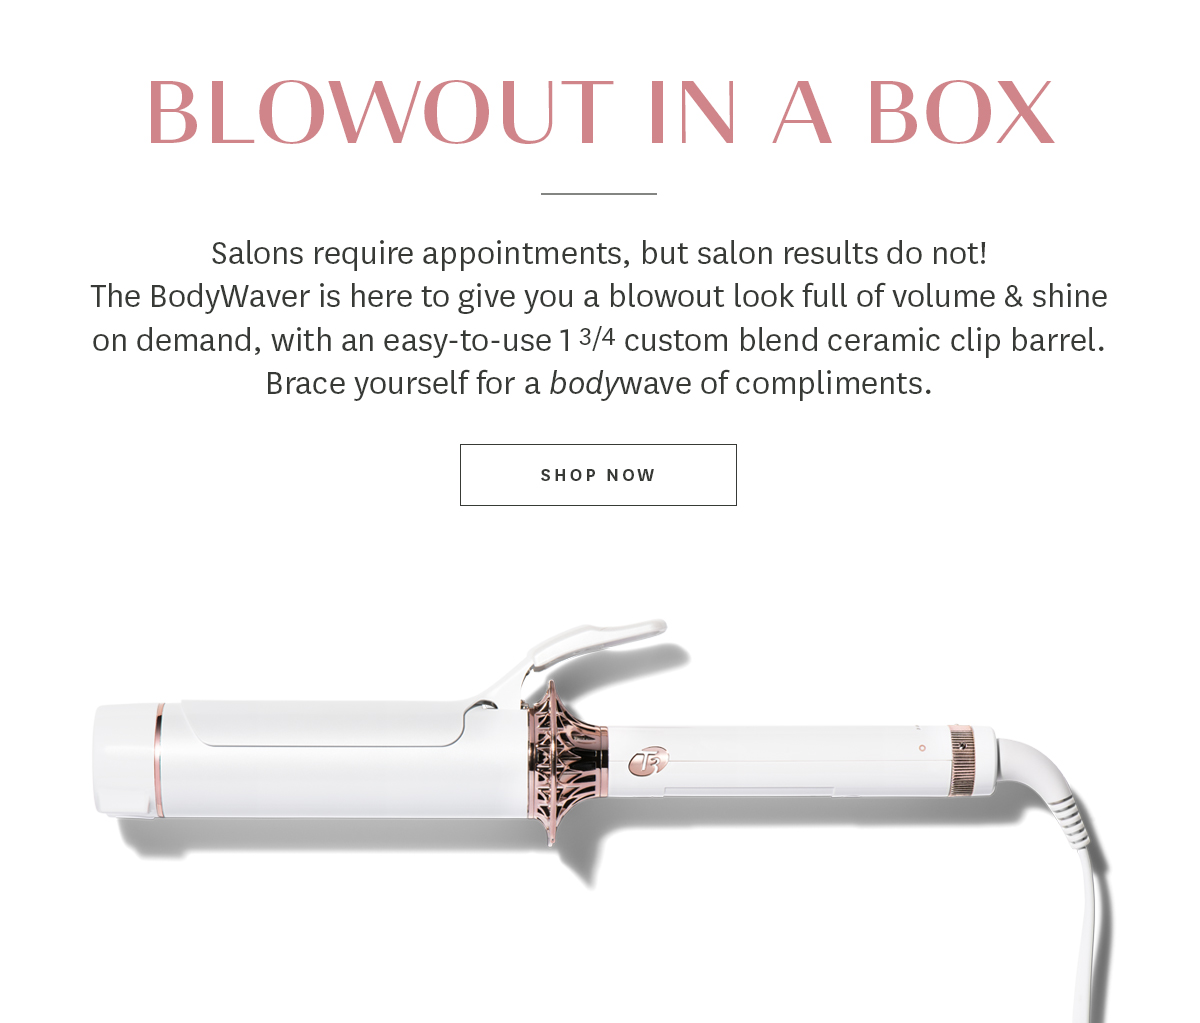 Blow out in a box